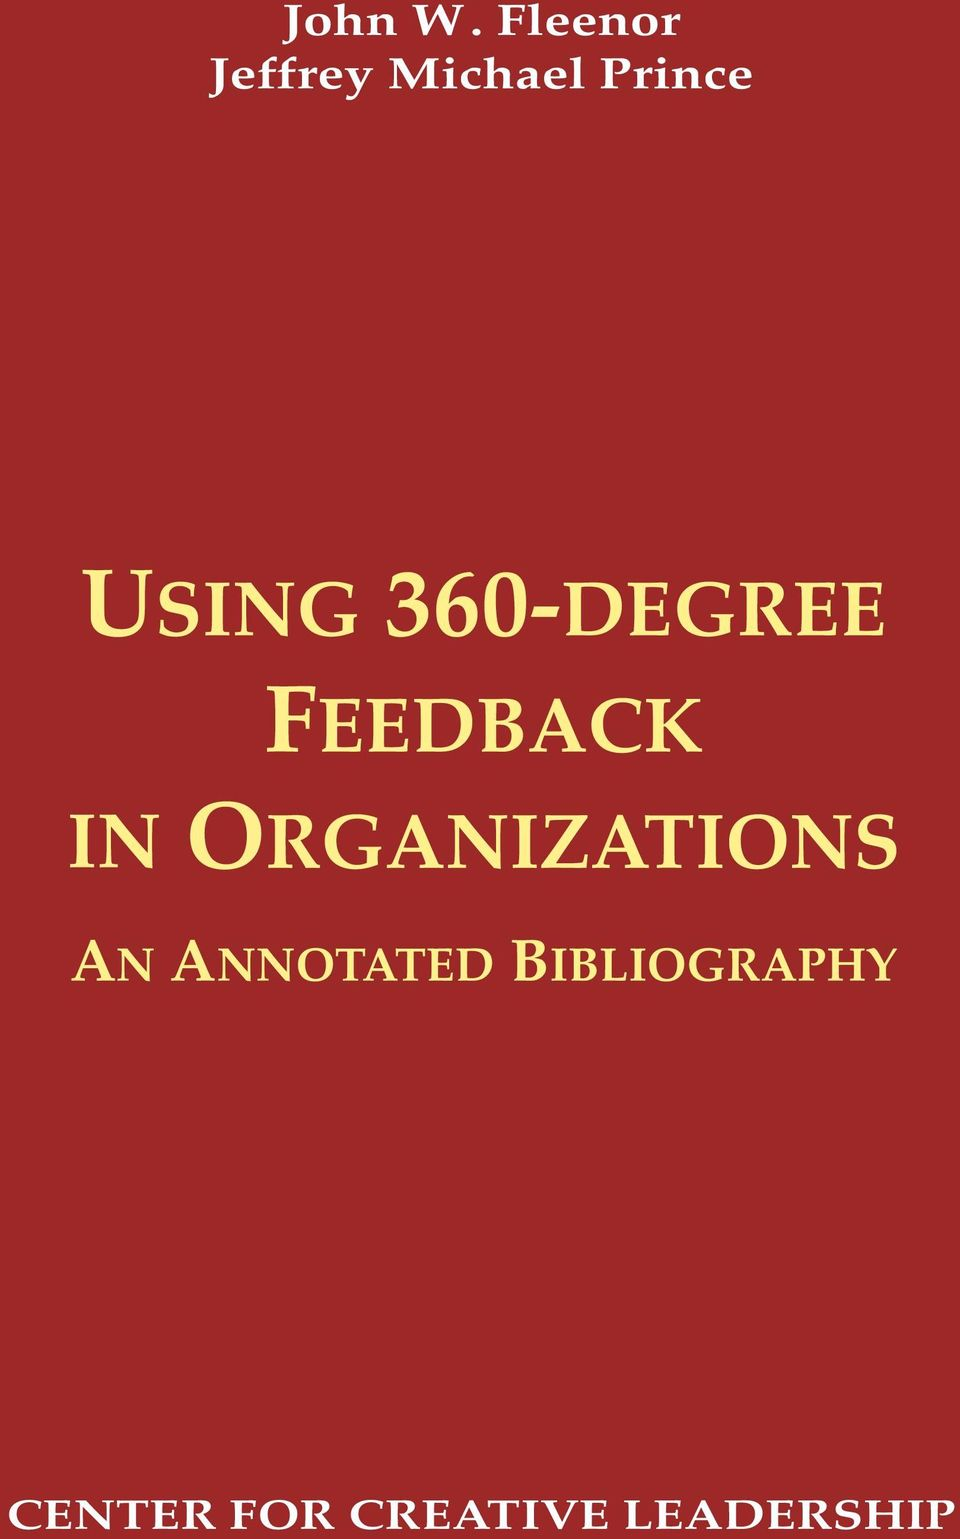 USING 360-DEGREE FEEDBACK IN